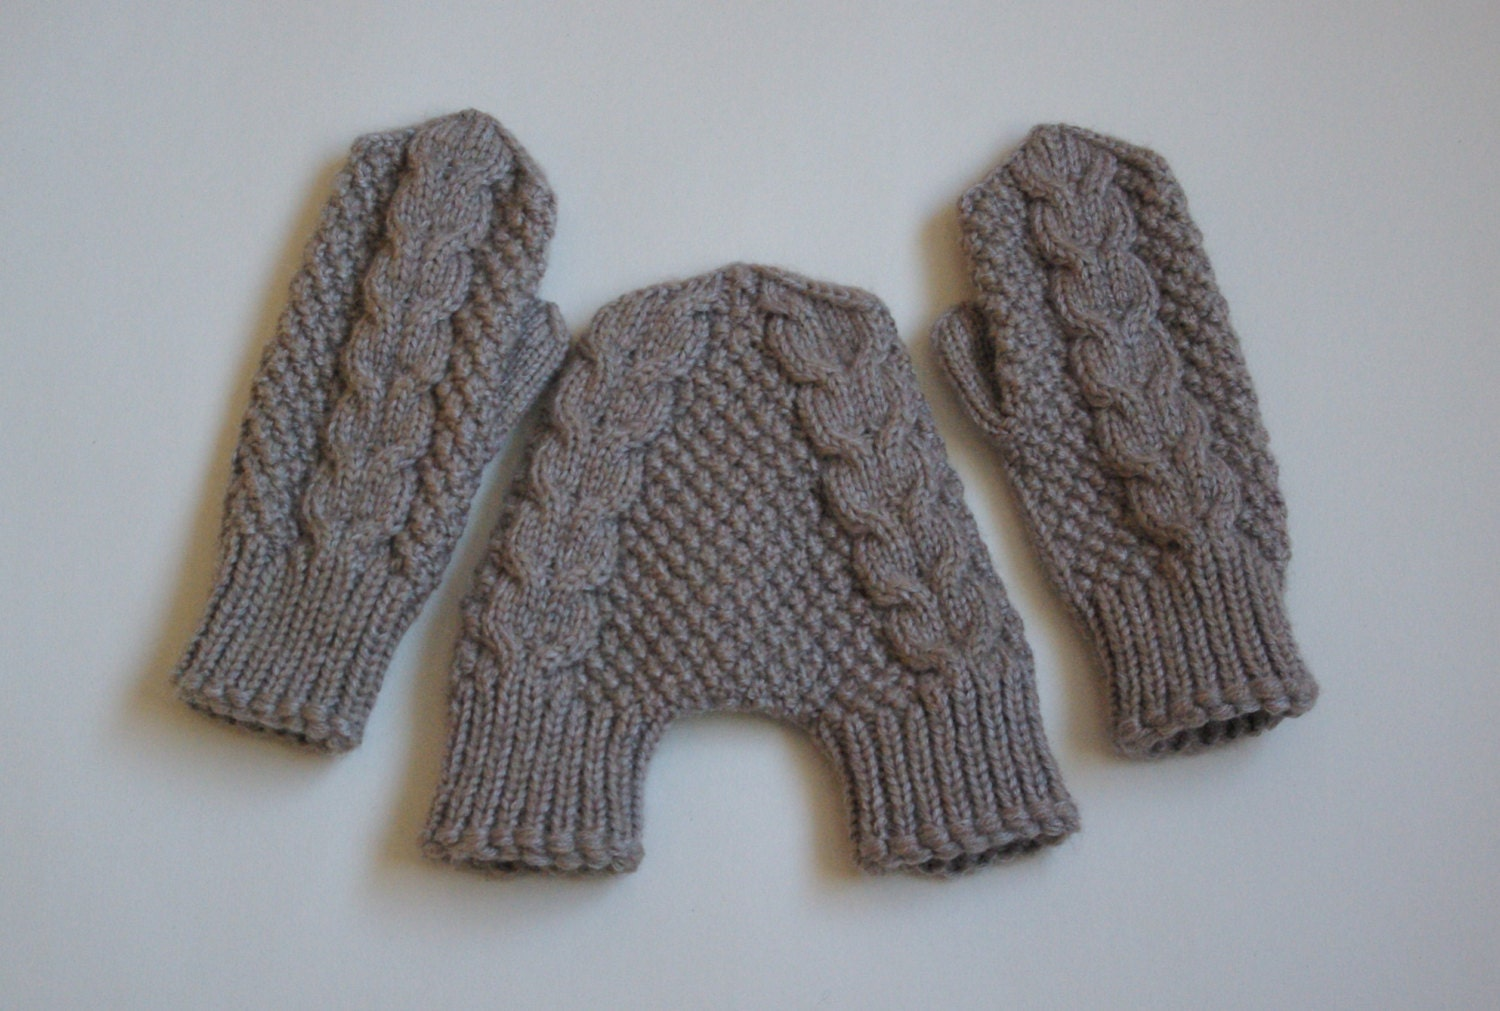 Knitting Pattern For Hand Holding Mittens : Cream wool mittens hand knit smitten mittens hand holding